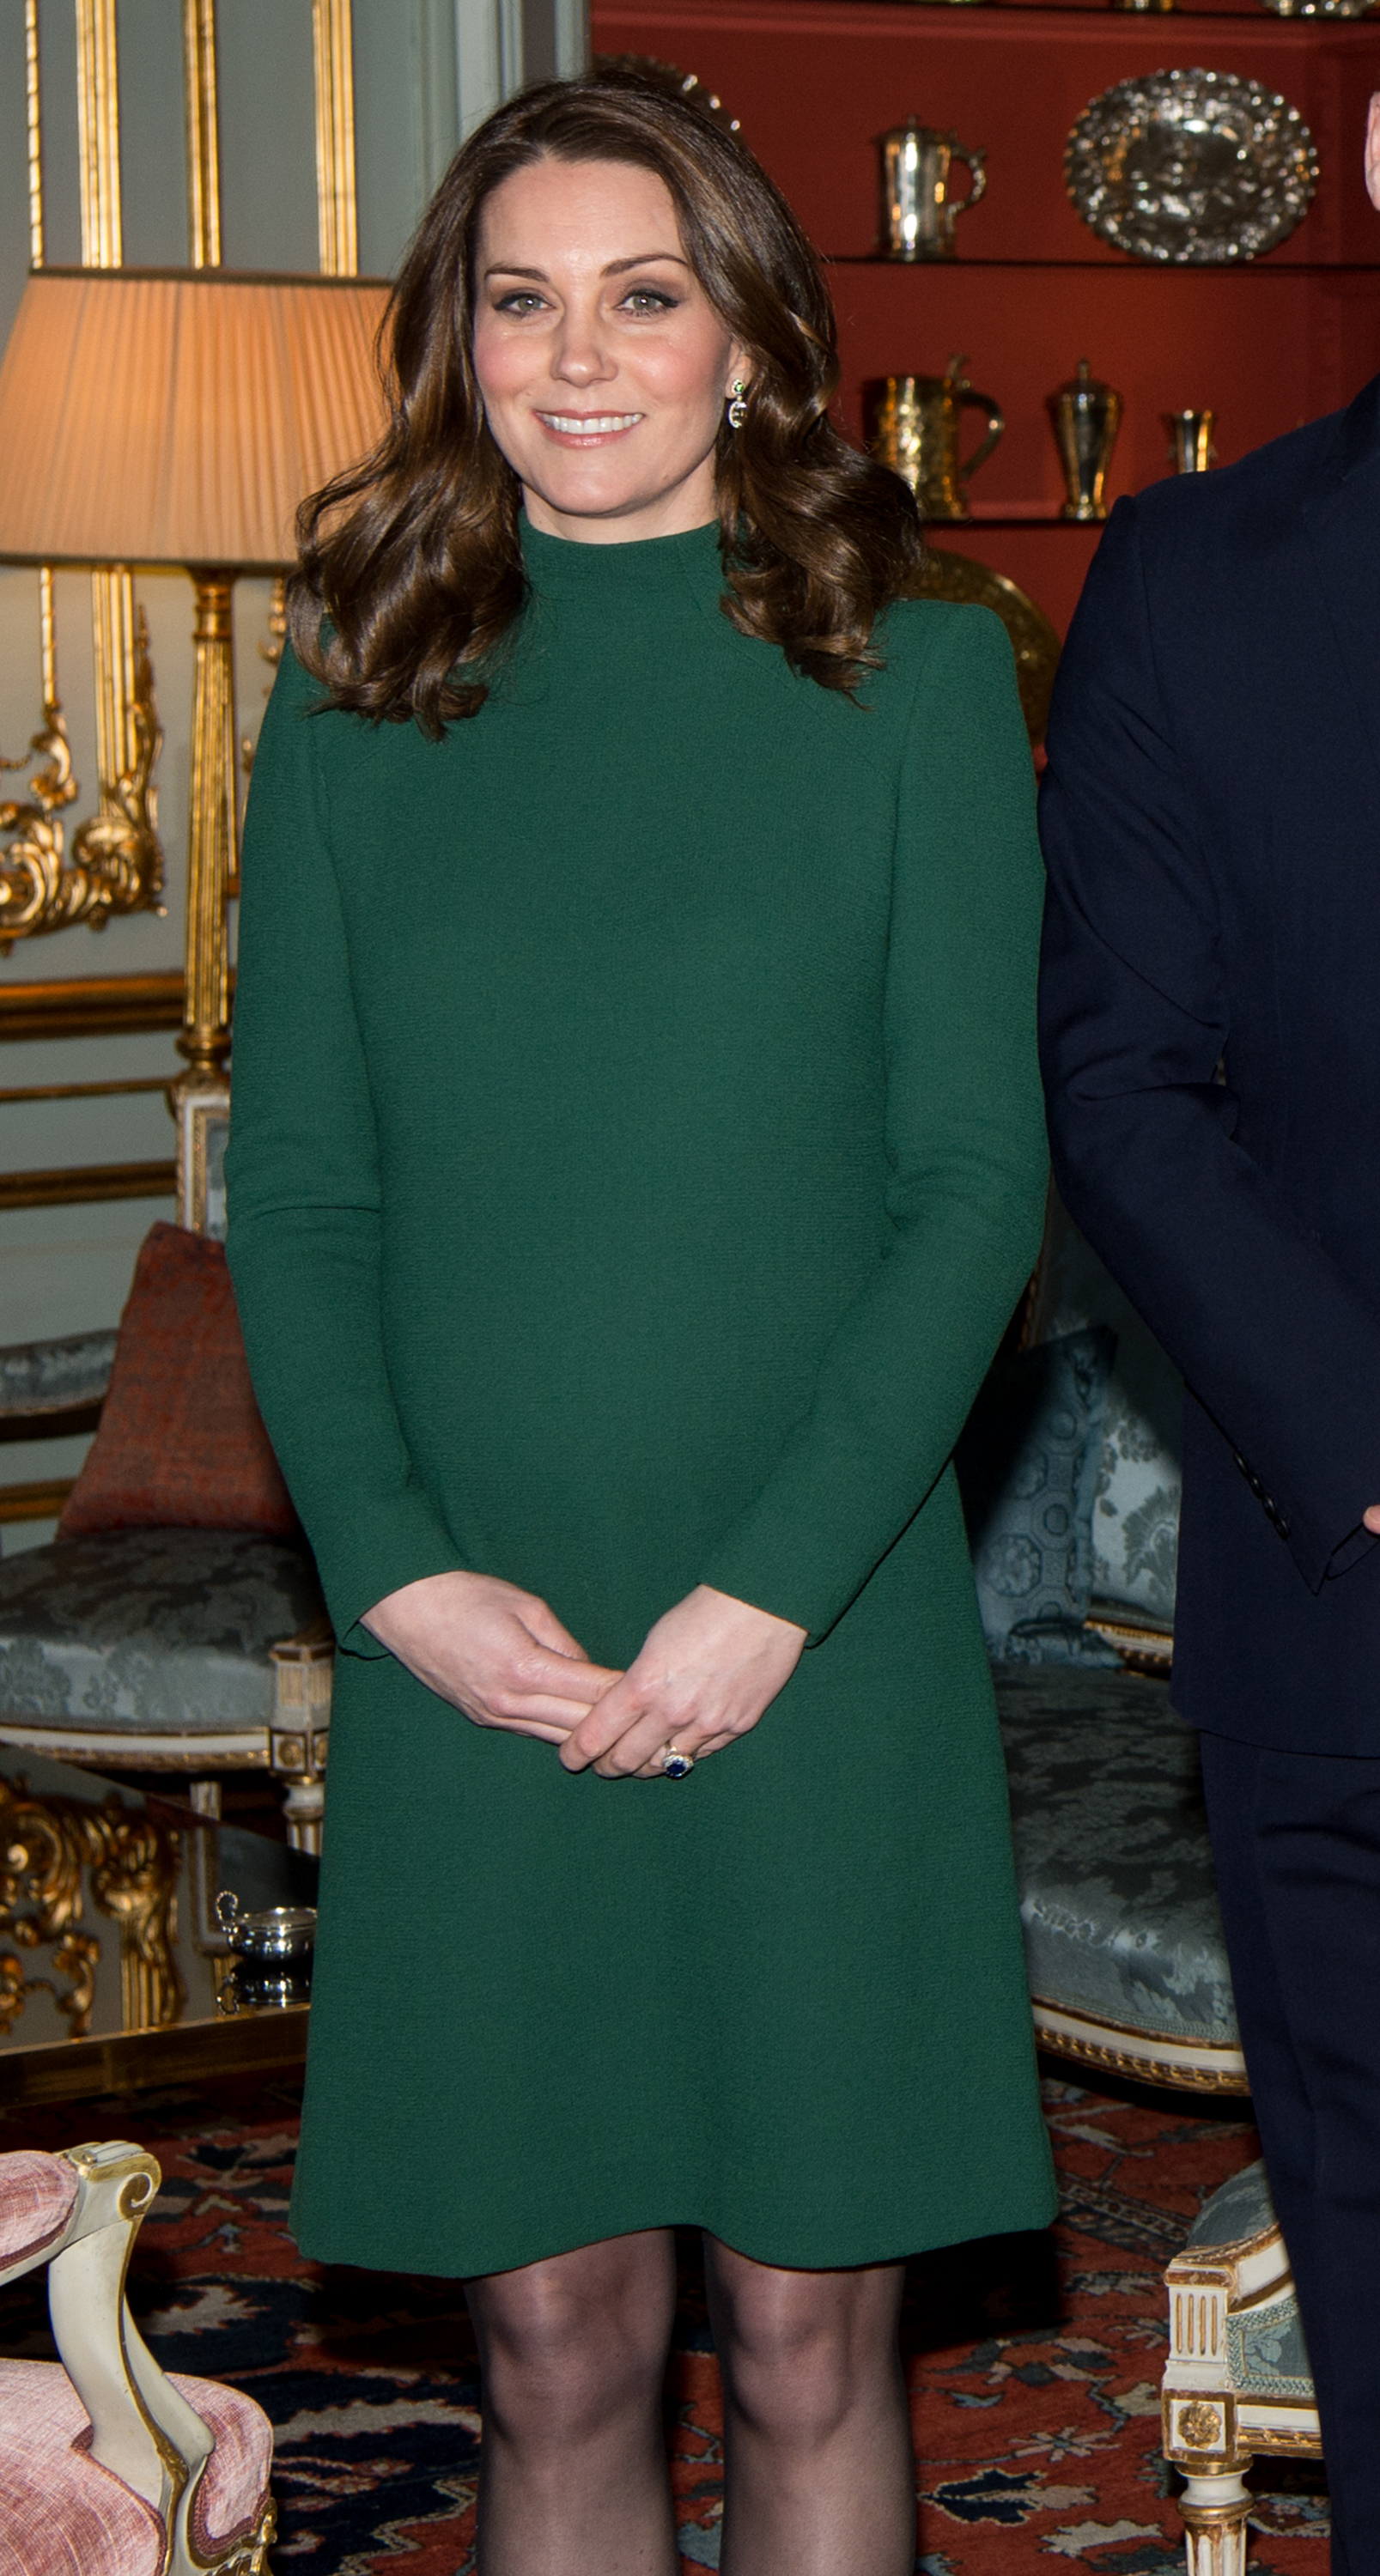 "When it comes to maternity clothing the Duchess of Cambridge's third pregnancy has induced cravings for colours of the rich, warm variety.<br /> <br /> For a meeting with the Swedish royal family as part of her official royal tour with Prince William, the 36-year-old opted for an eye-catching emerald green dress by Catherine Walker.<br /> <br /> The fitted frock featured a high neckline and long sleeves but an above-the-knee hemline kept it feeling youthful.<br /> <br /> The Duchess isn't the fashion-forward celebrity to embrace the regal shade of green. <br /> <br /> Reese Witherspoon was a stand-out on the red carpet at last week's <a href=""https://style.nine.com.au/2018/01/22/09/12/sag-awards-2018-red-carpet-fashion"" target=""_blank"">Screen Actors Guild Awards</a> in a custom Zac Posen gown, which she paired with Jimmy Choo heels and Gismondi jewels.<br /> <br /> And model Jesinta Franklin made the shade her own for an appearance at the Magic Millions race day earlier this month.<br /> <br /> We're seeing this bright, bold colour not only in fashion but jewellery and interiors too. Something tells us this will be the colour to beat in 2018.<br /> <br /> Click through as we take you on a tour of Emerald City and check out some of your favourite celebrities nailing the colour as well as some pieces you can add to your own wardrobe."